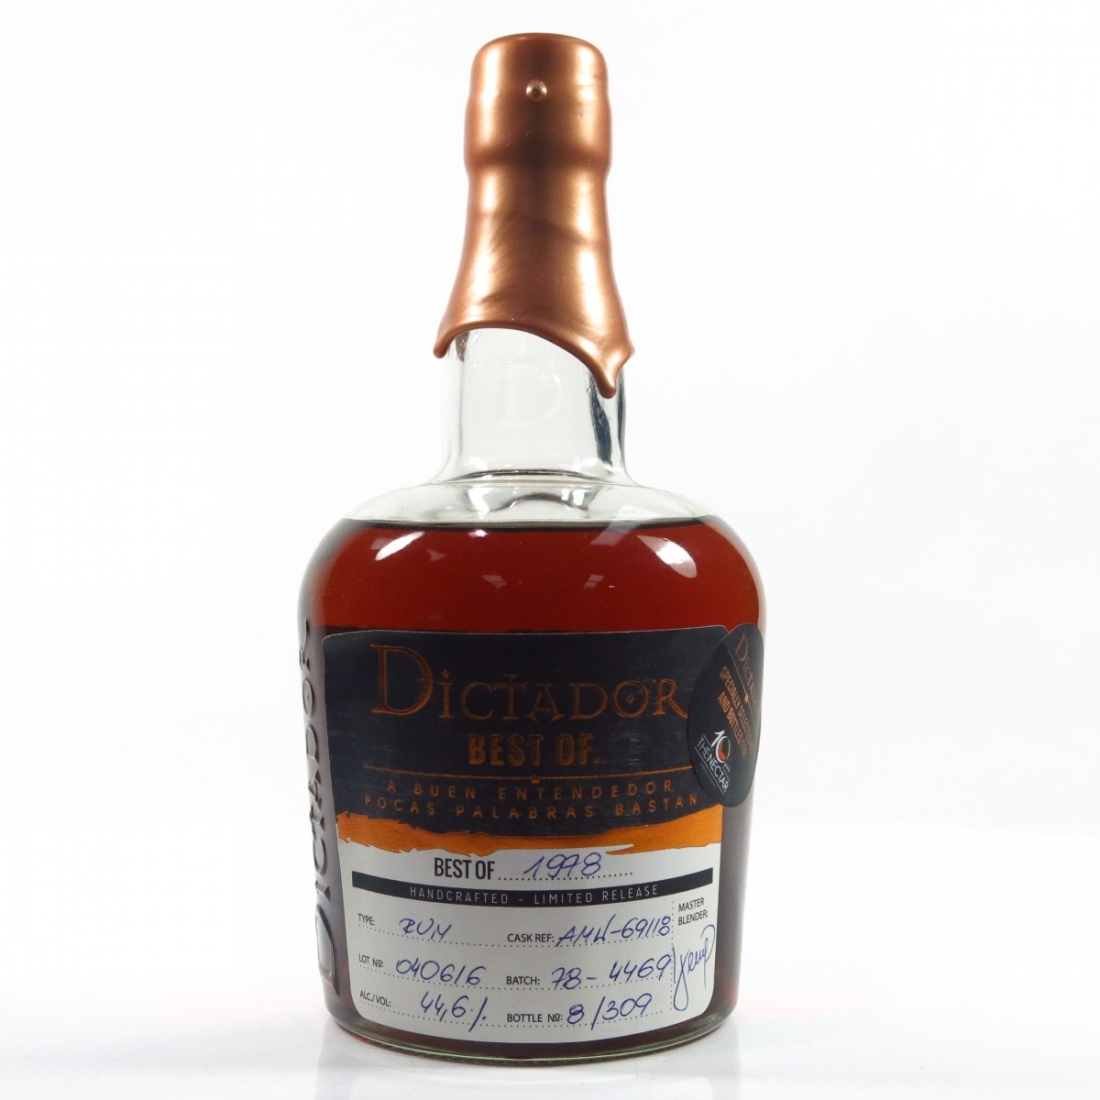 Dictador Best of 1978 Limited release / 10th Anniversary of The Nectar